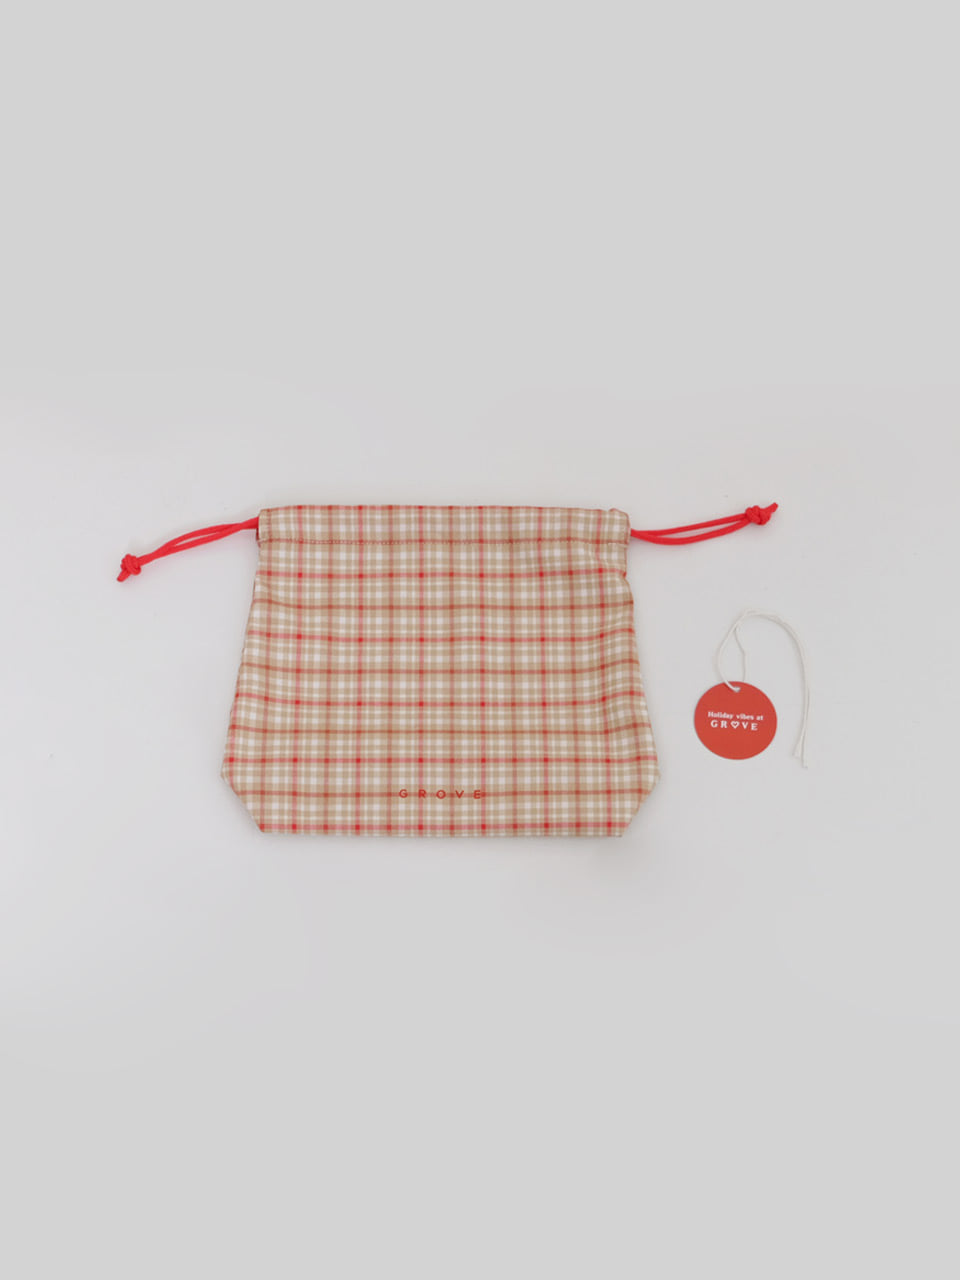 GROVE SMALL POUCH